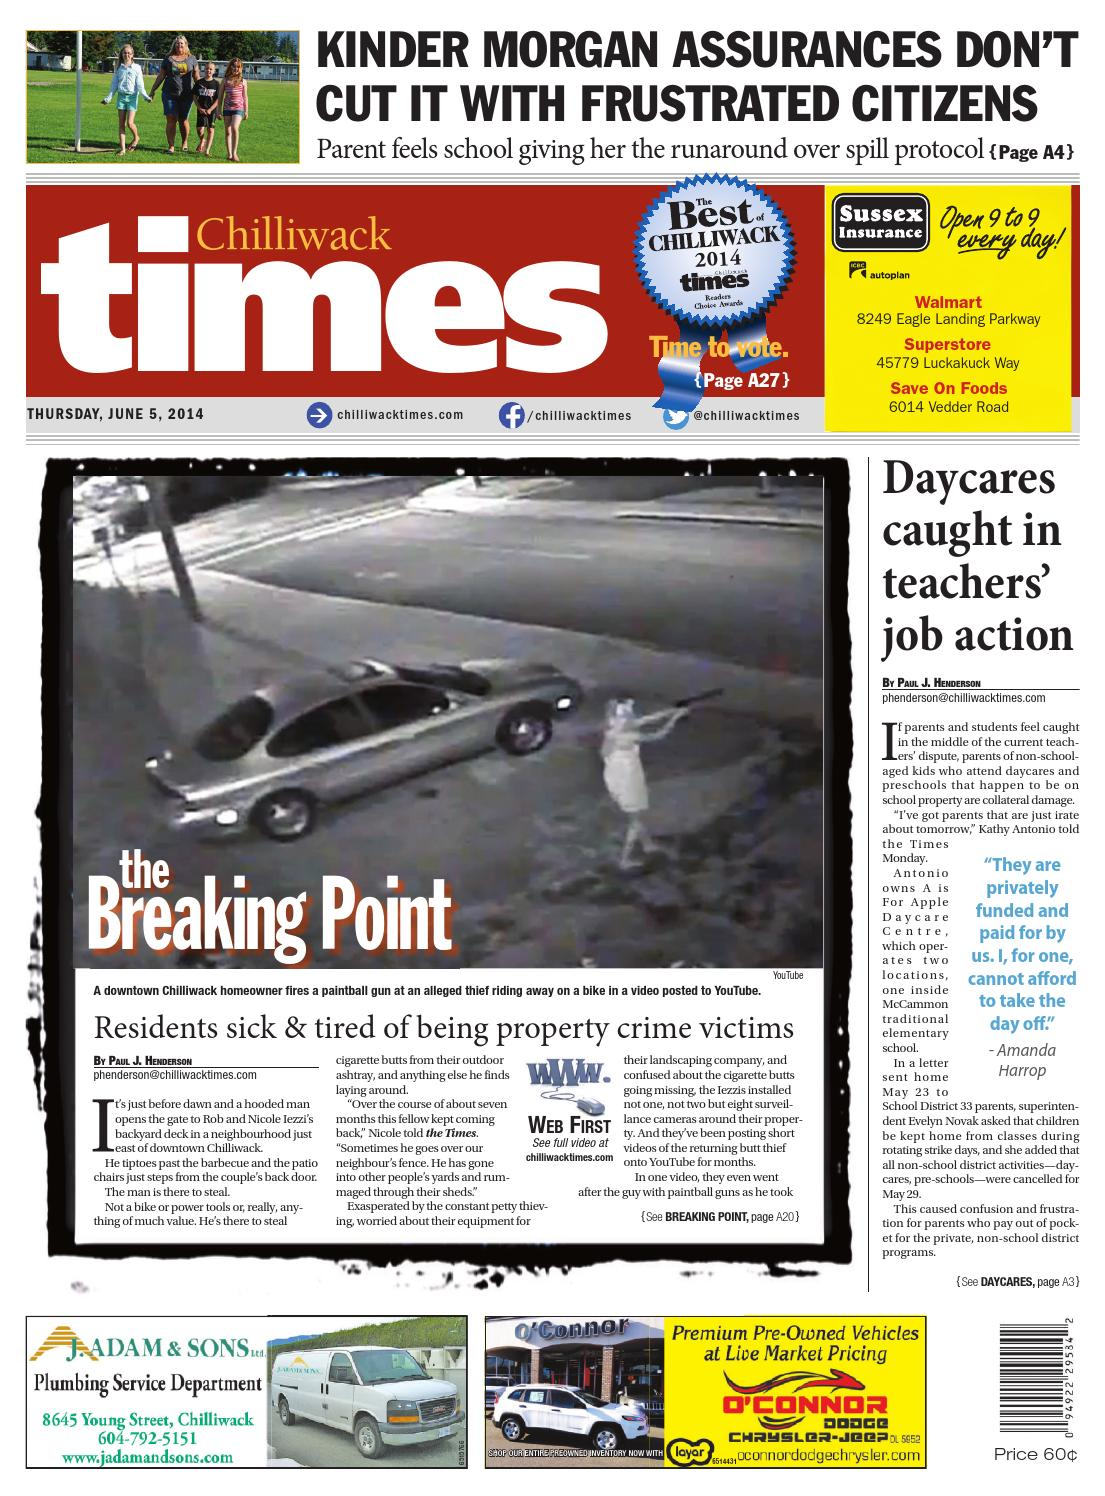 Chilliwack Times June 05 2014 by Chilliwack Times - issuu